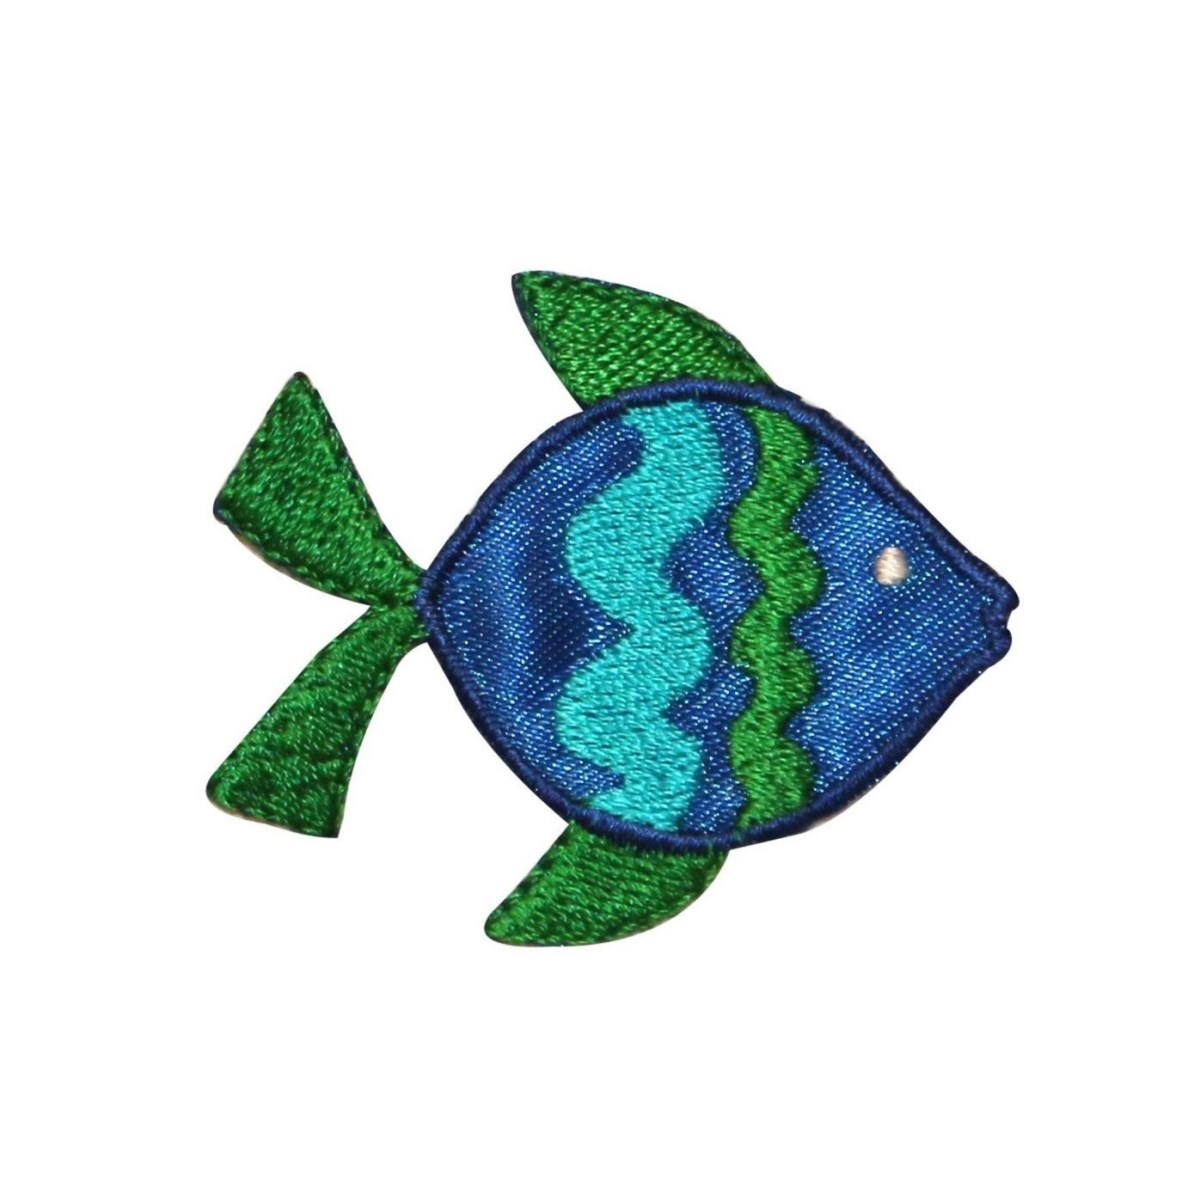 ID 0218 Tropical Snapper Fish Emblem Patch Ocean Fishing DIY Iron On Applique